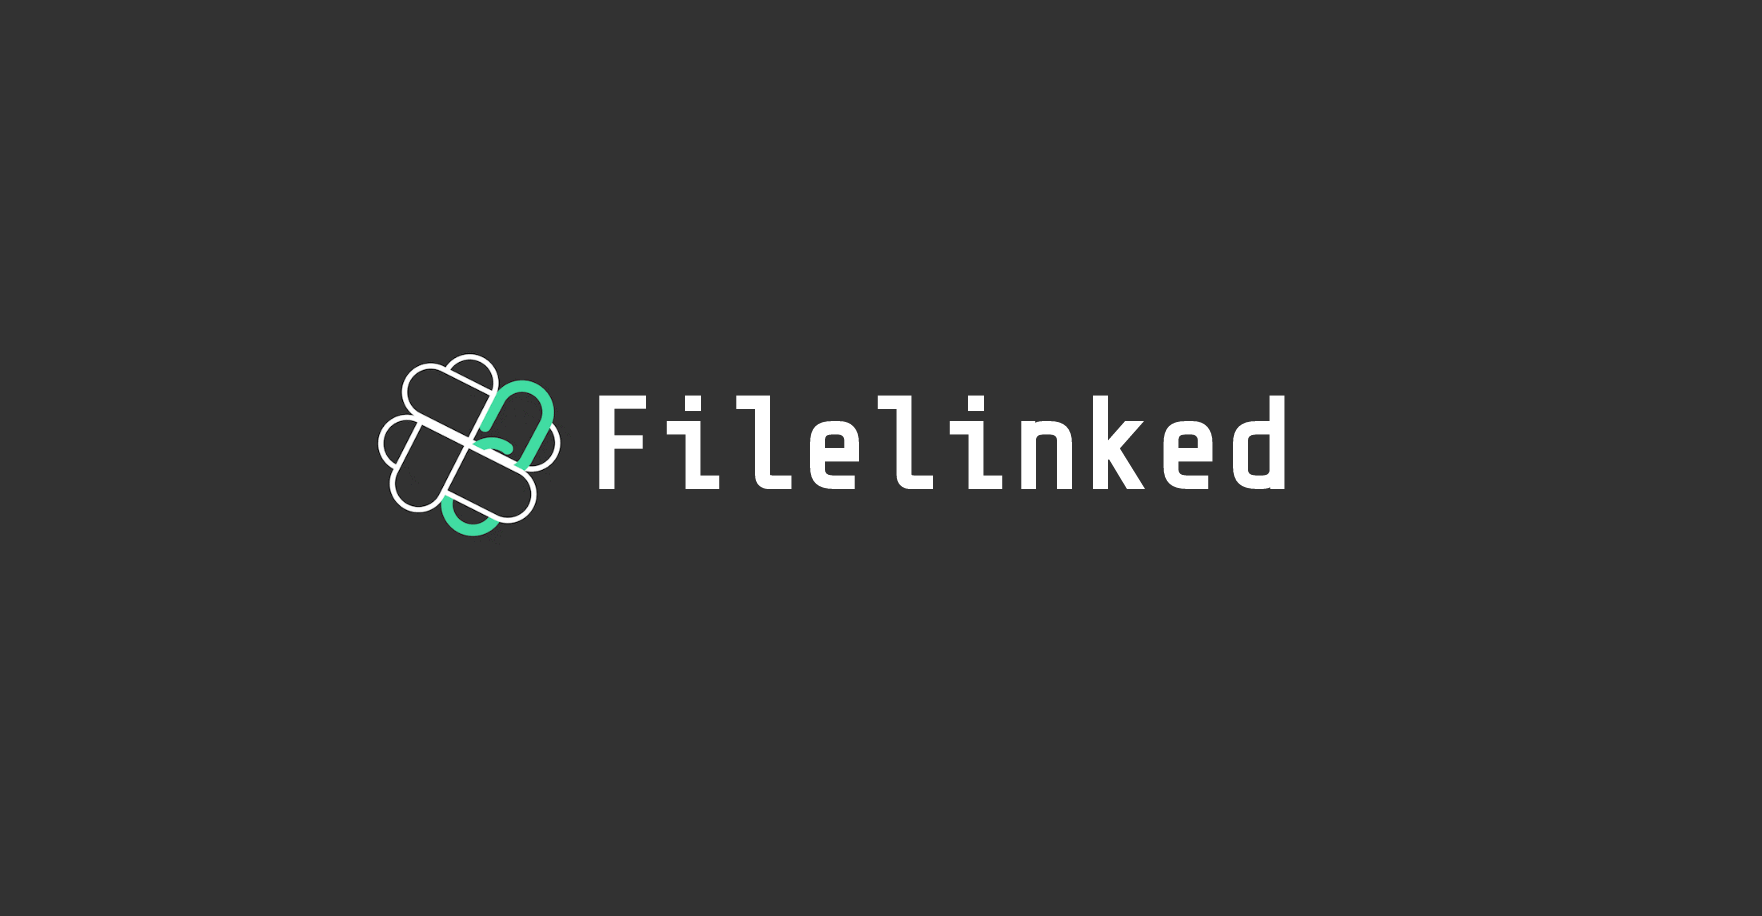 How to Rank Your FileLinked Store Higher on Google